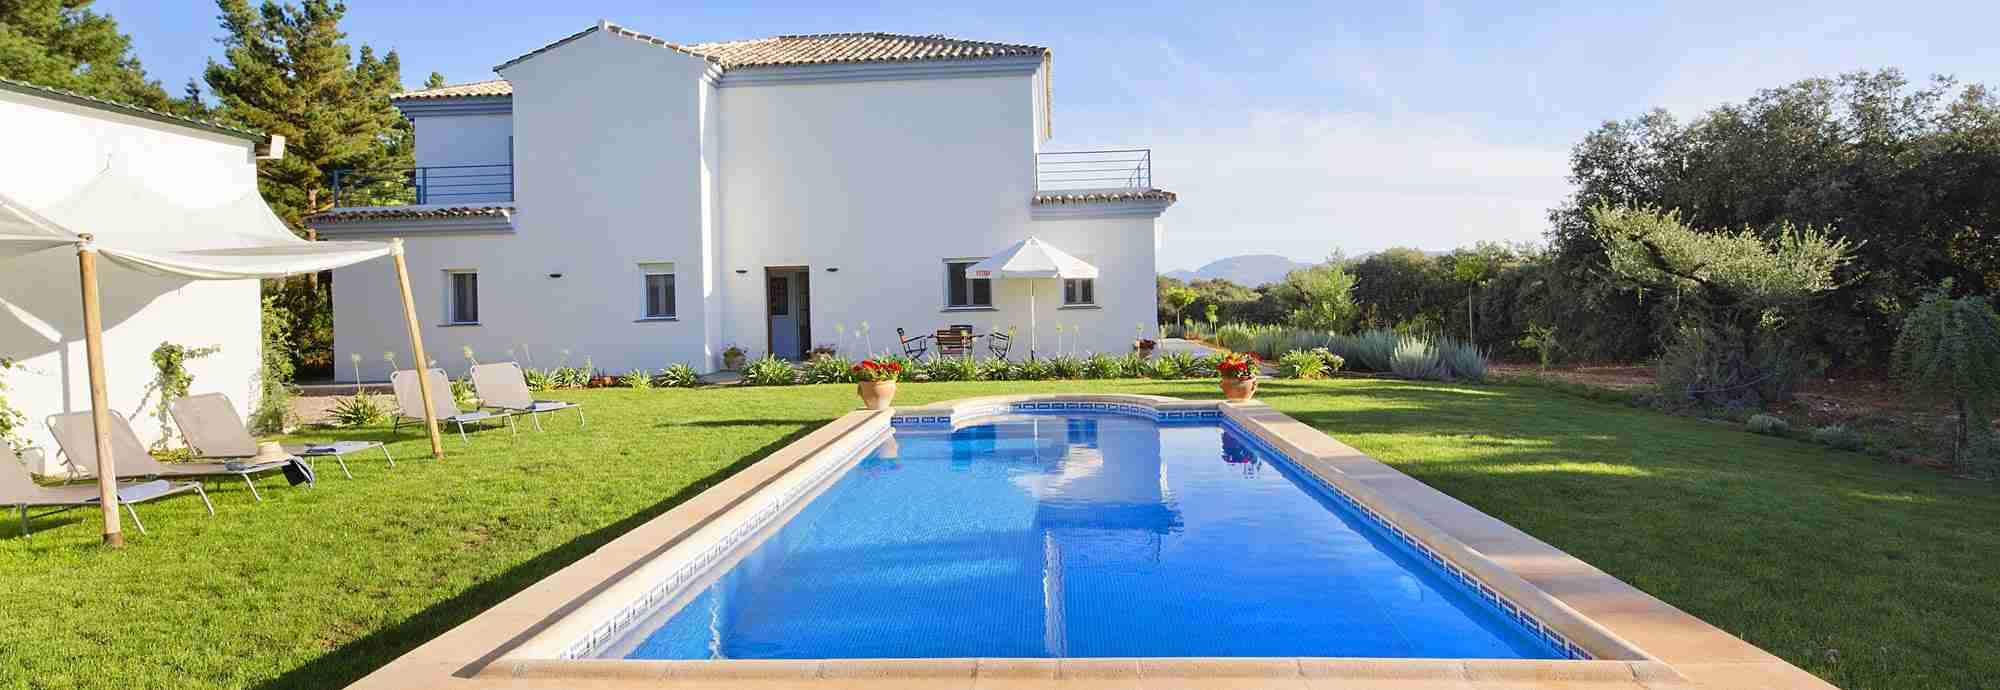 Gleaming Ronda villa with large private pool and green lawned gardens